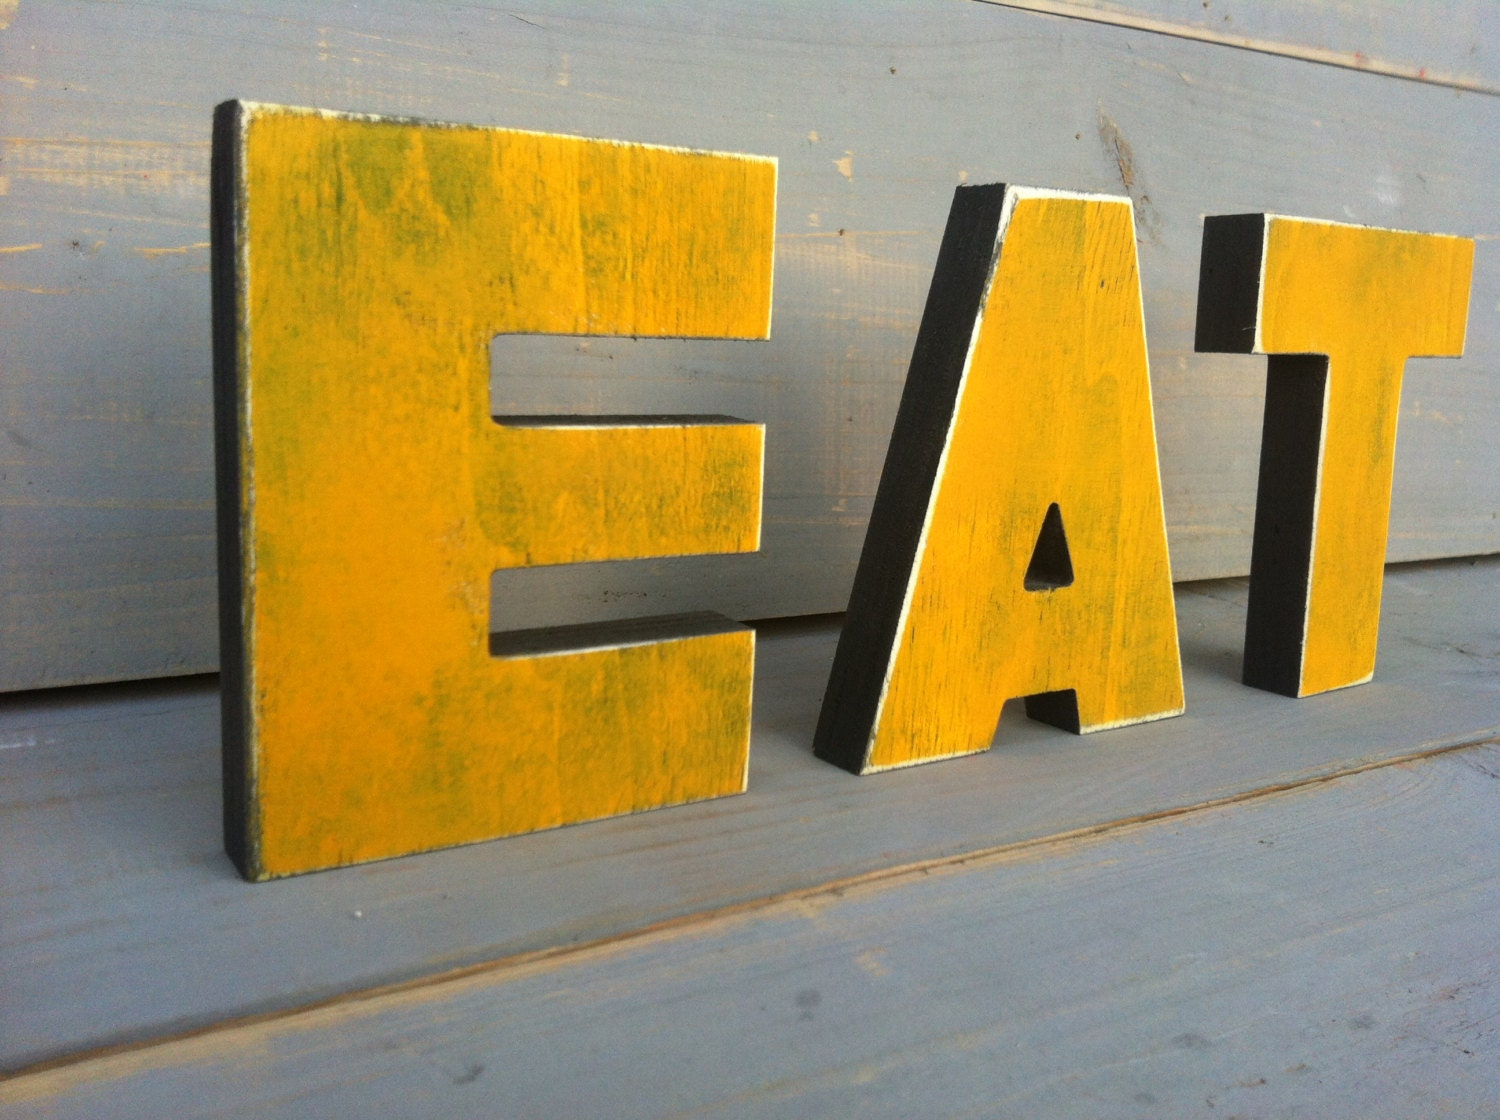 Amazing Eat Sign Wall Decor Gift - All About Wallart - adelgazare.info